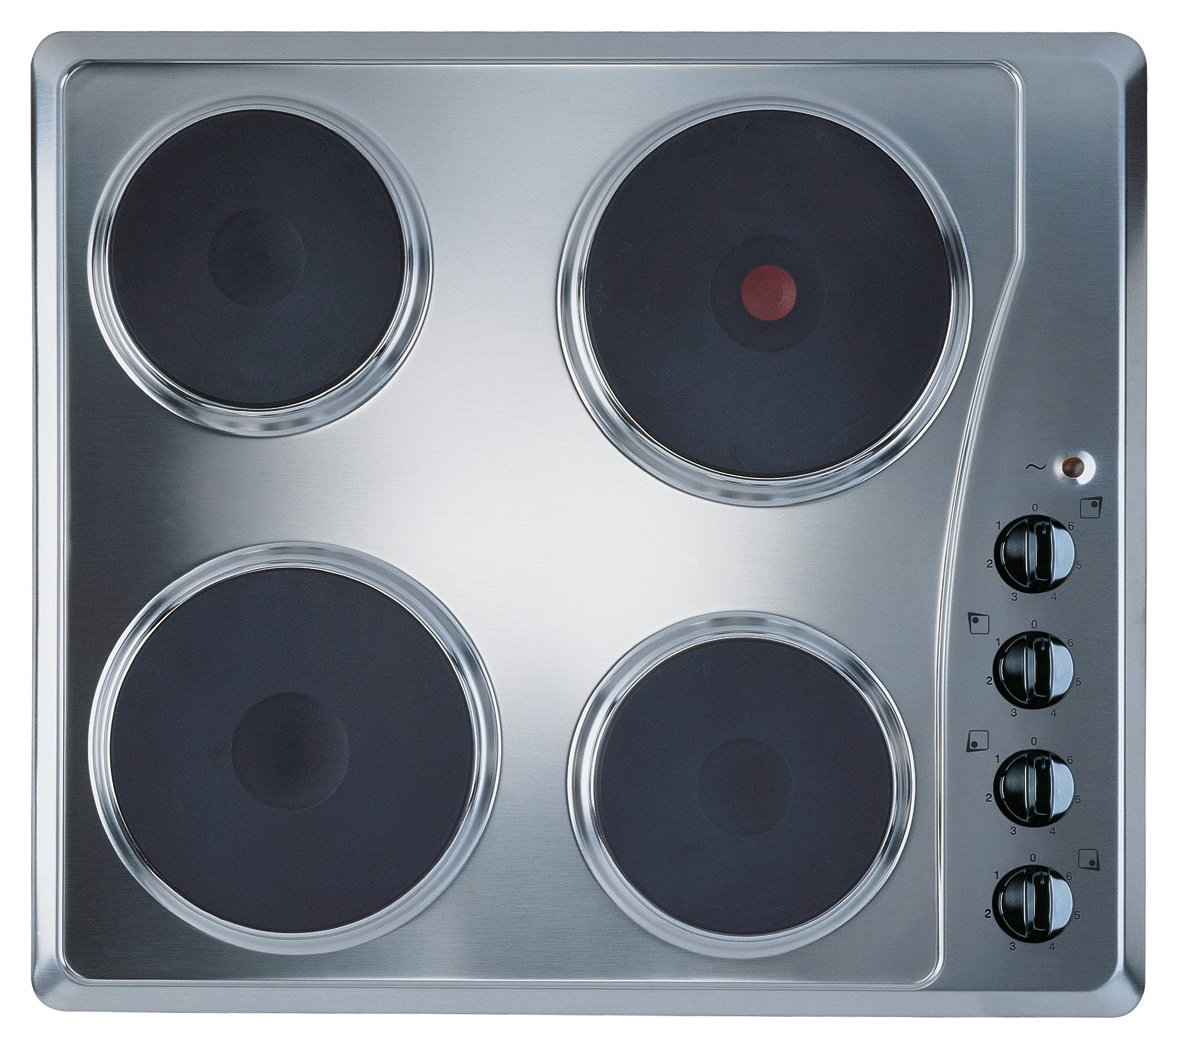 Indesit Ti60x Solid Plate Electric Hob review